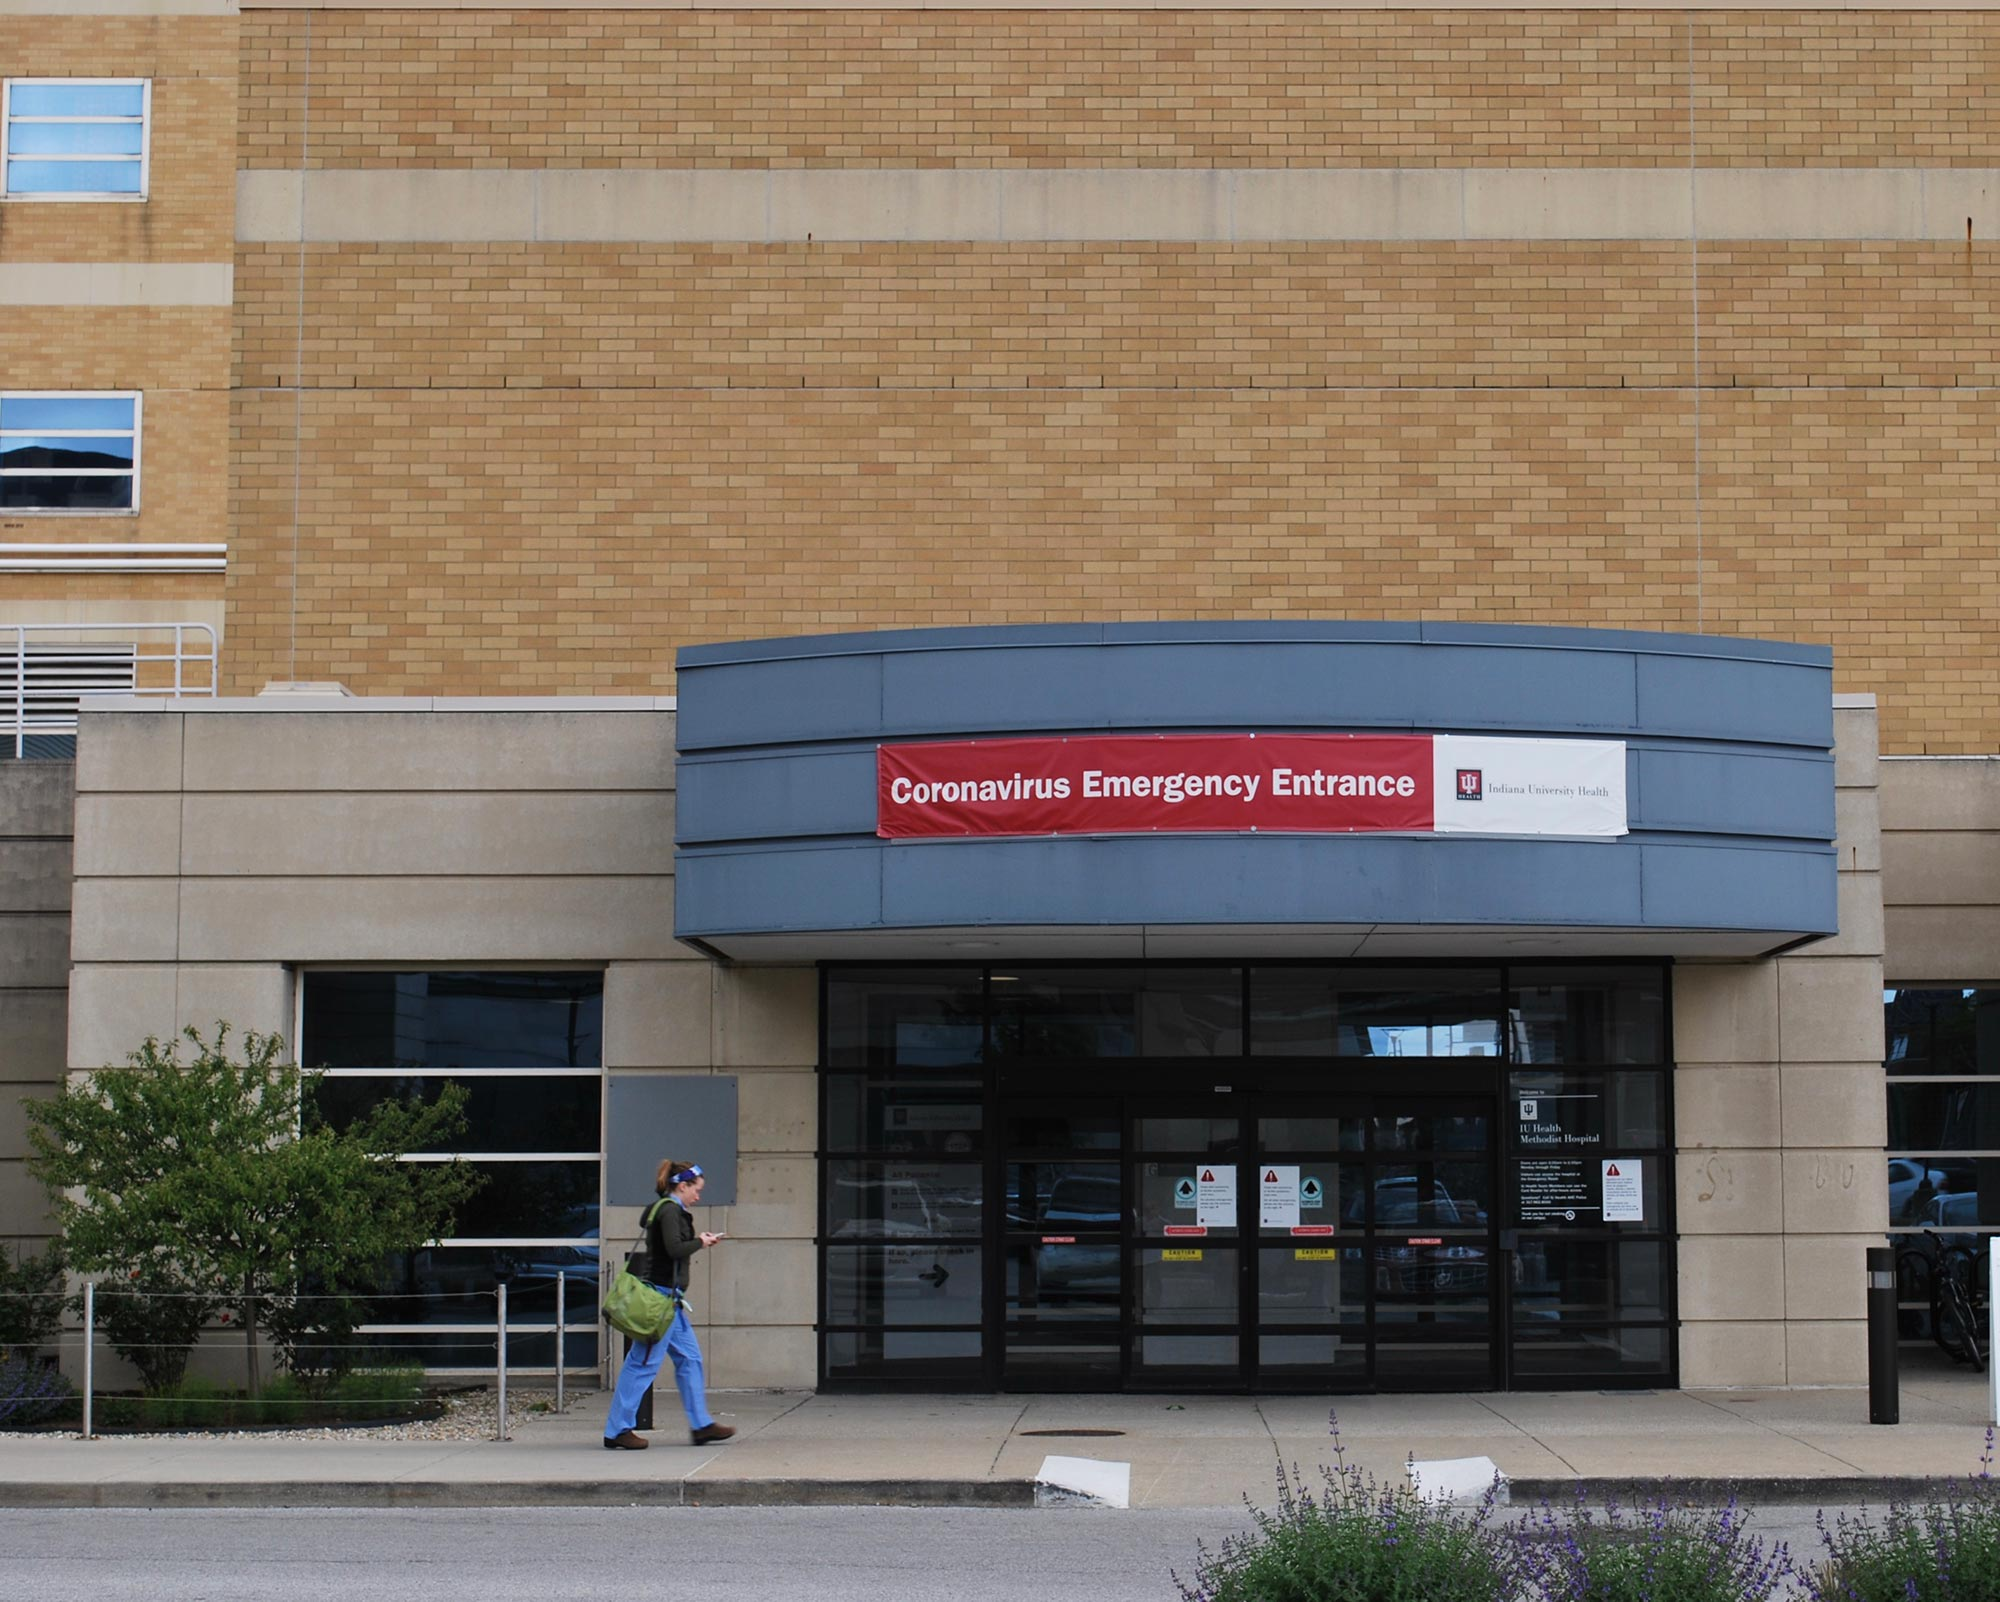 COVID-19 emergency room at IU health